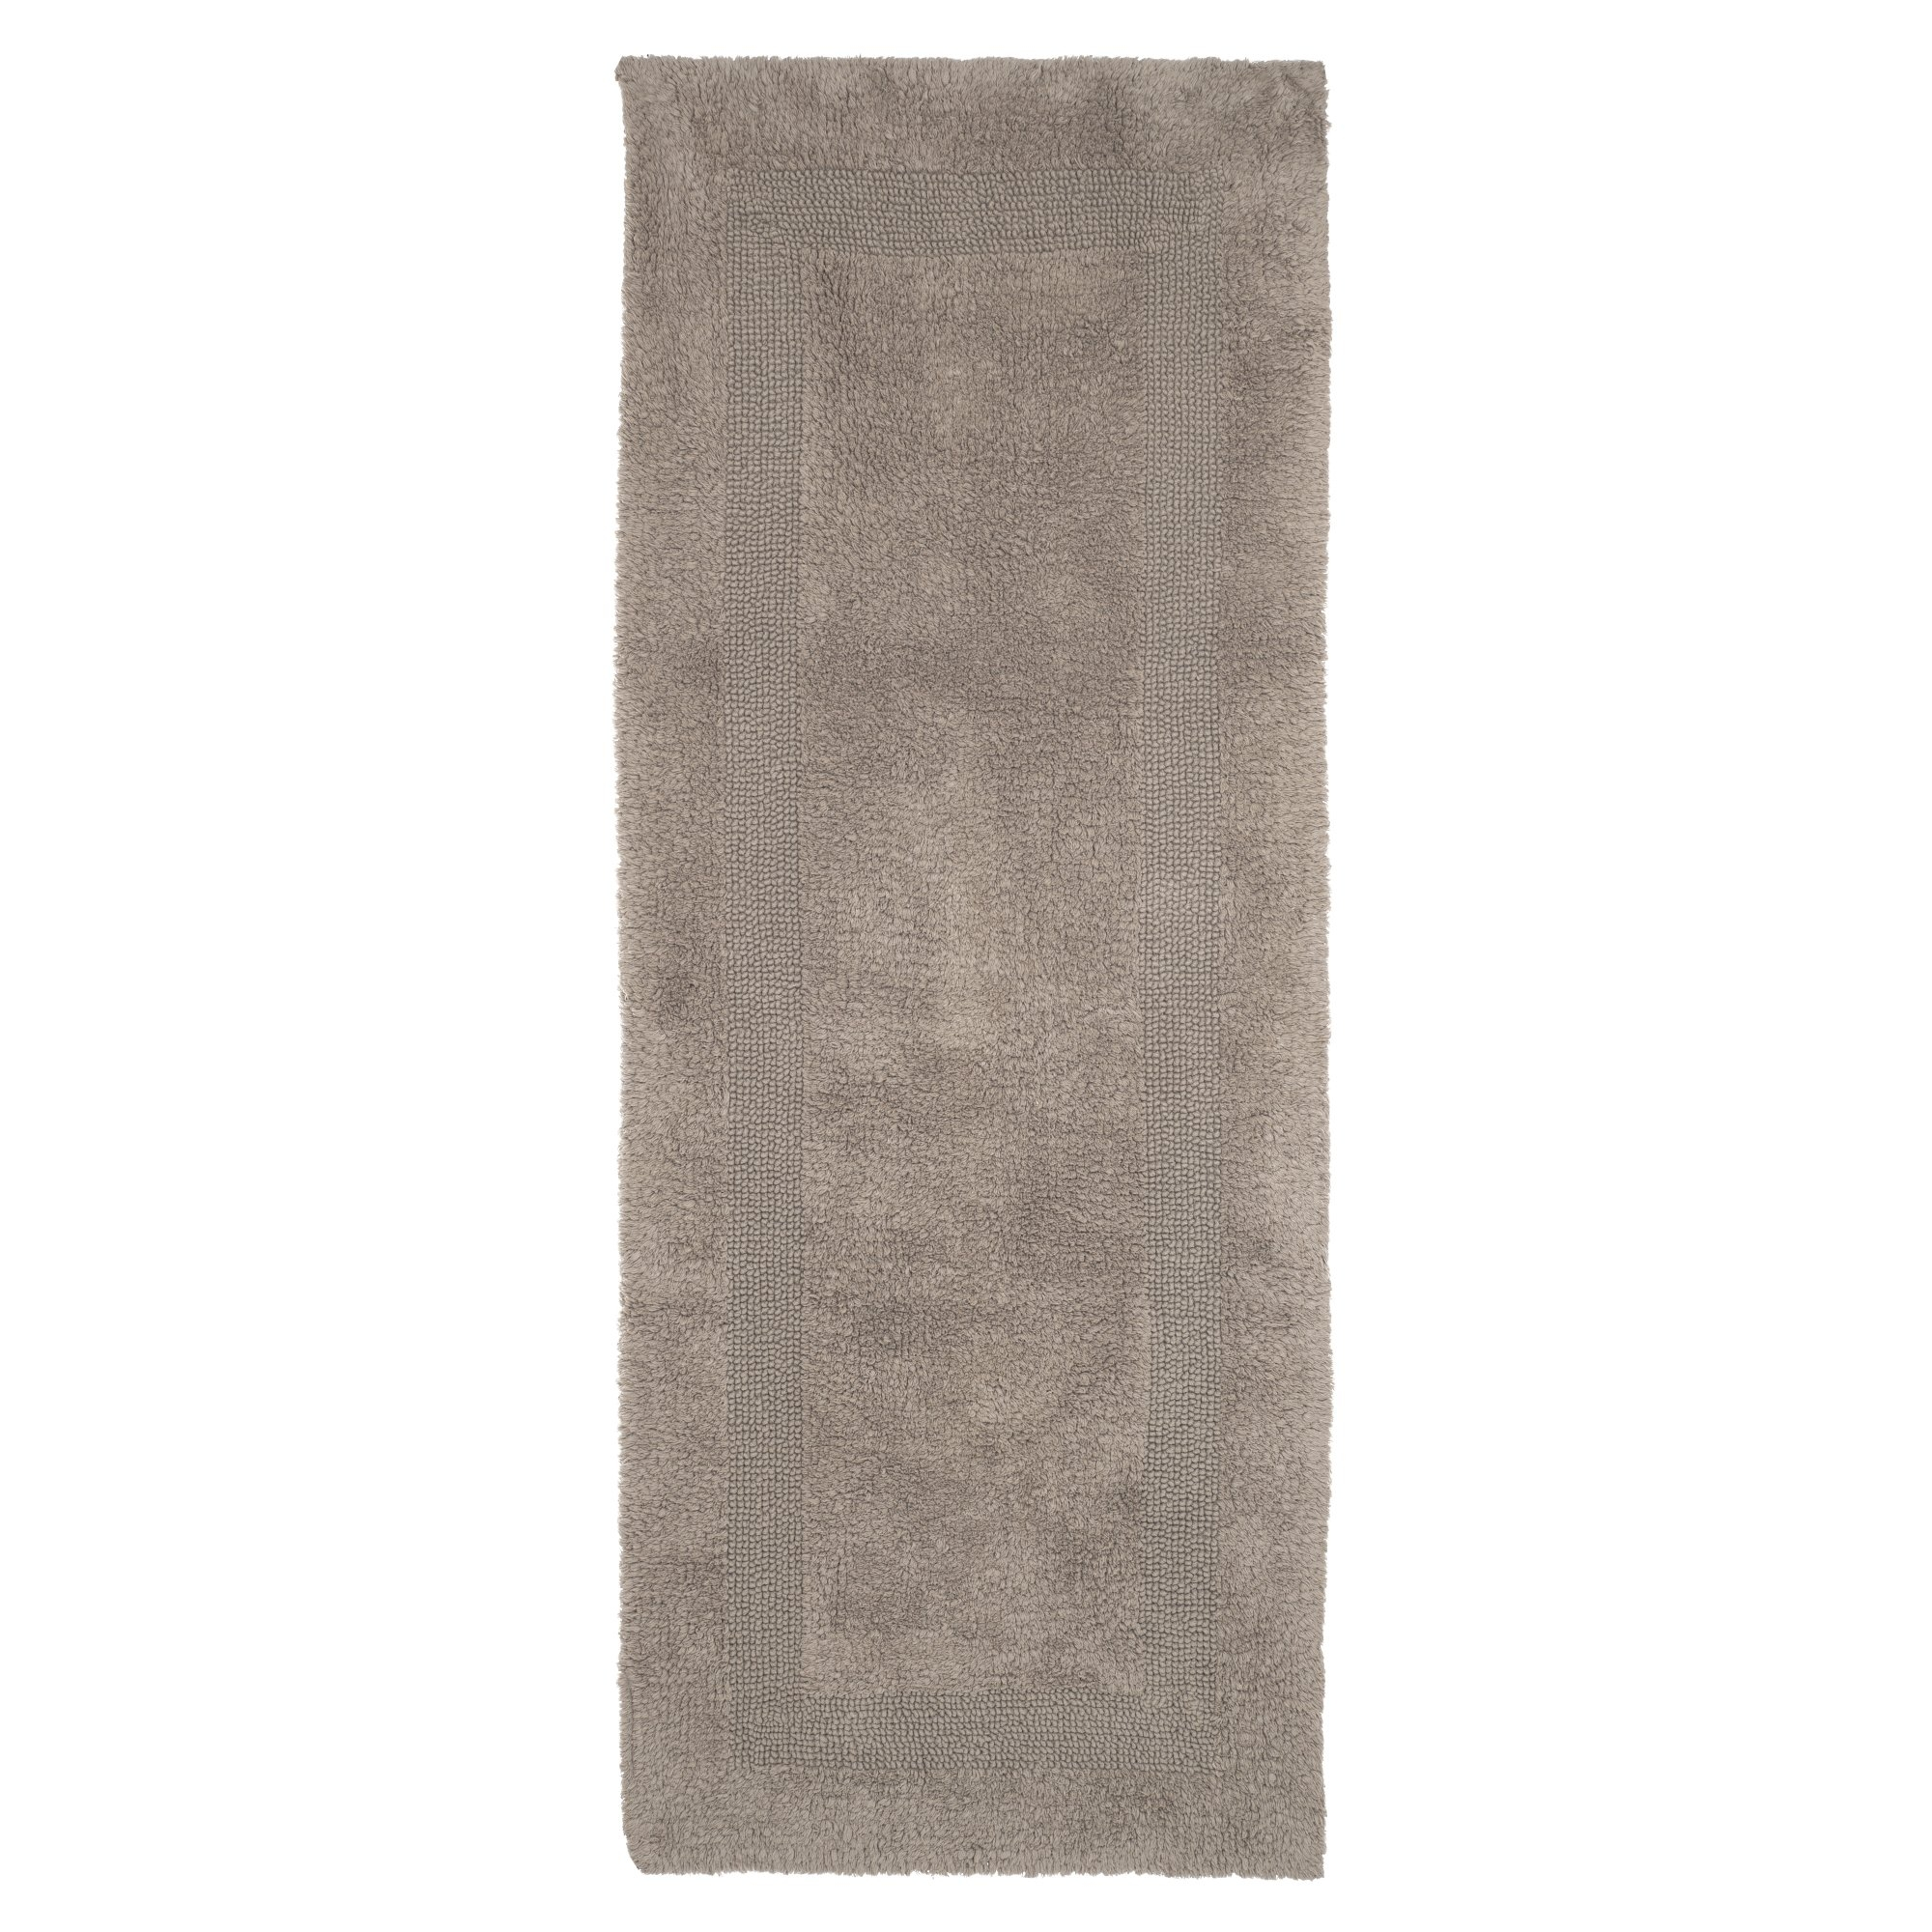 Extra Long Spa Bath Rug